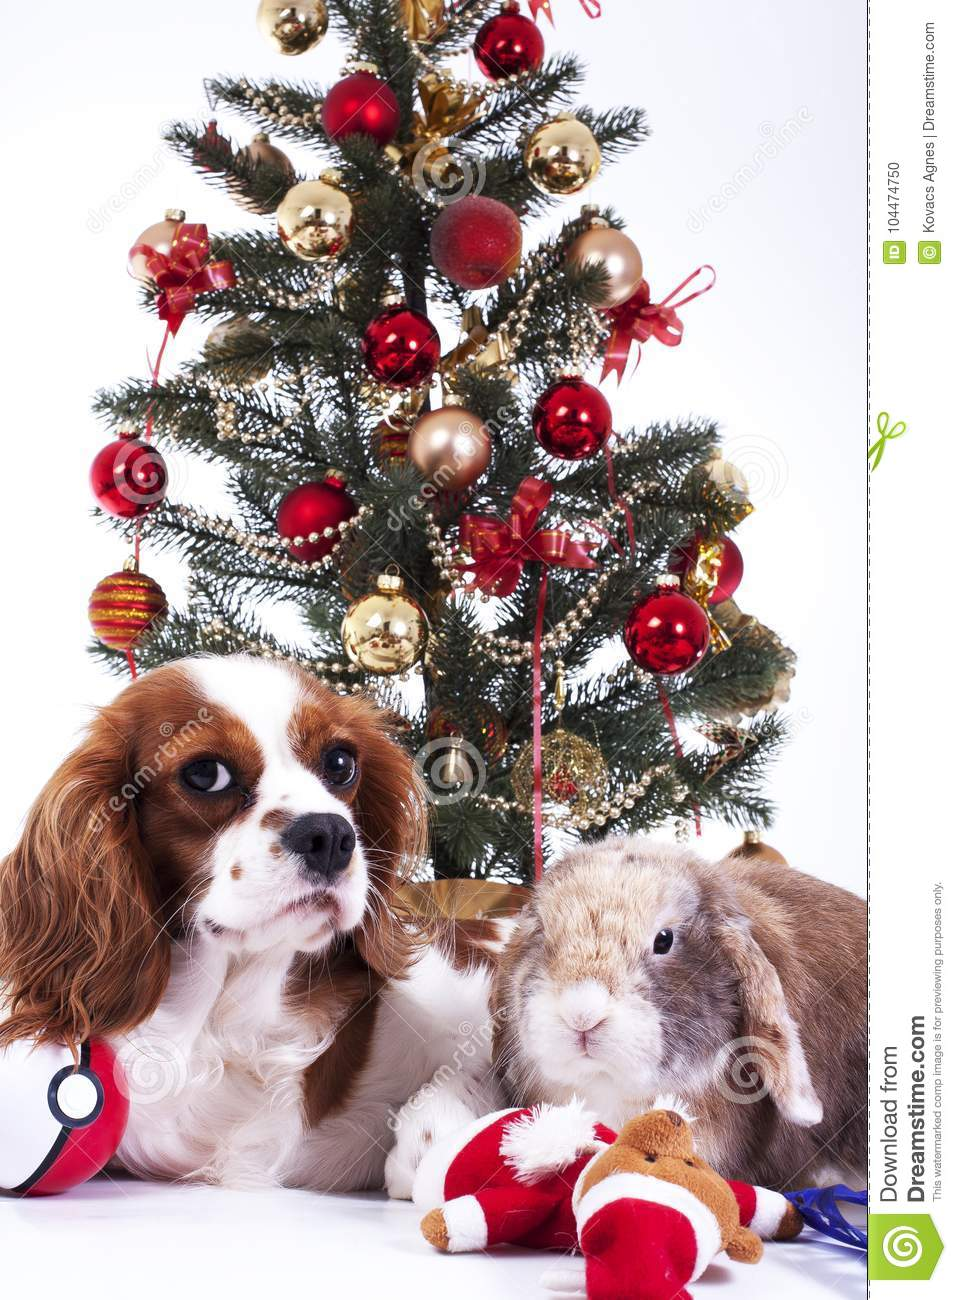 Christmas dog celebrate christmas with tree on studio. Christmas bauble ornaments glass balls and cavalier king charles